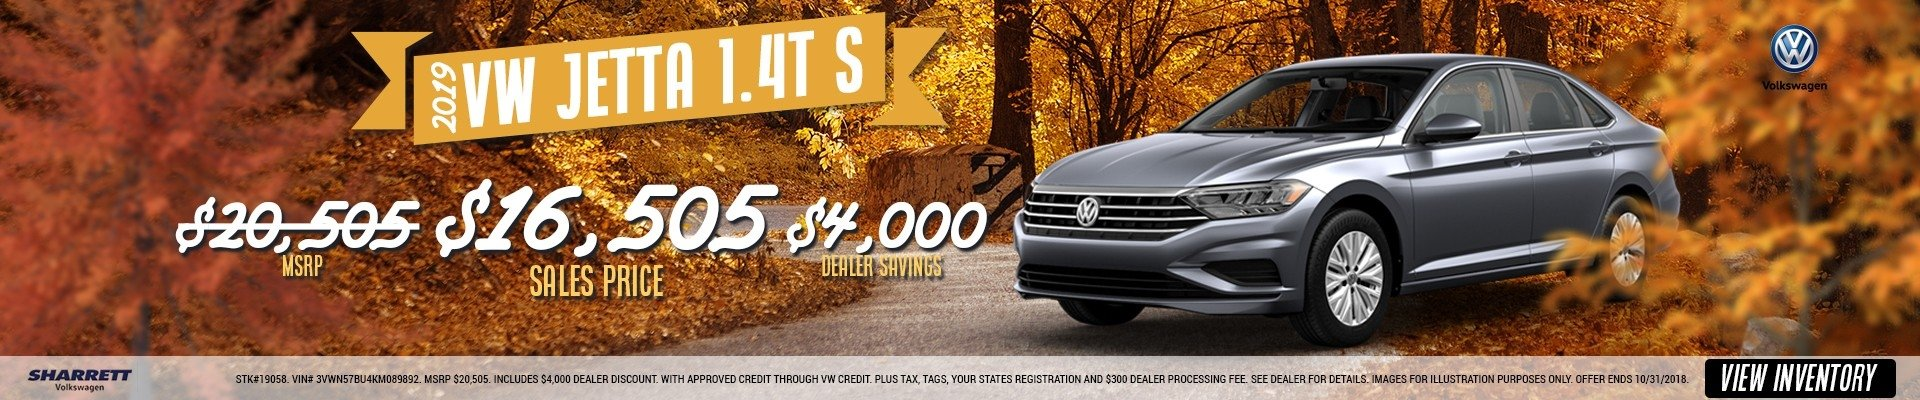 Save $4,000 on a new 2019 VW Jetta 1.4T S